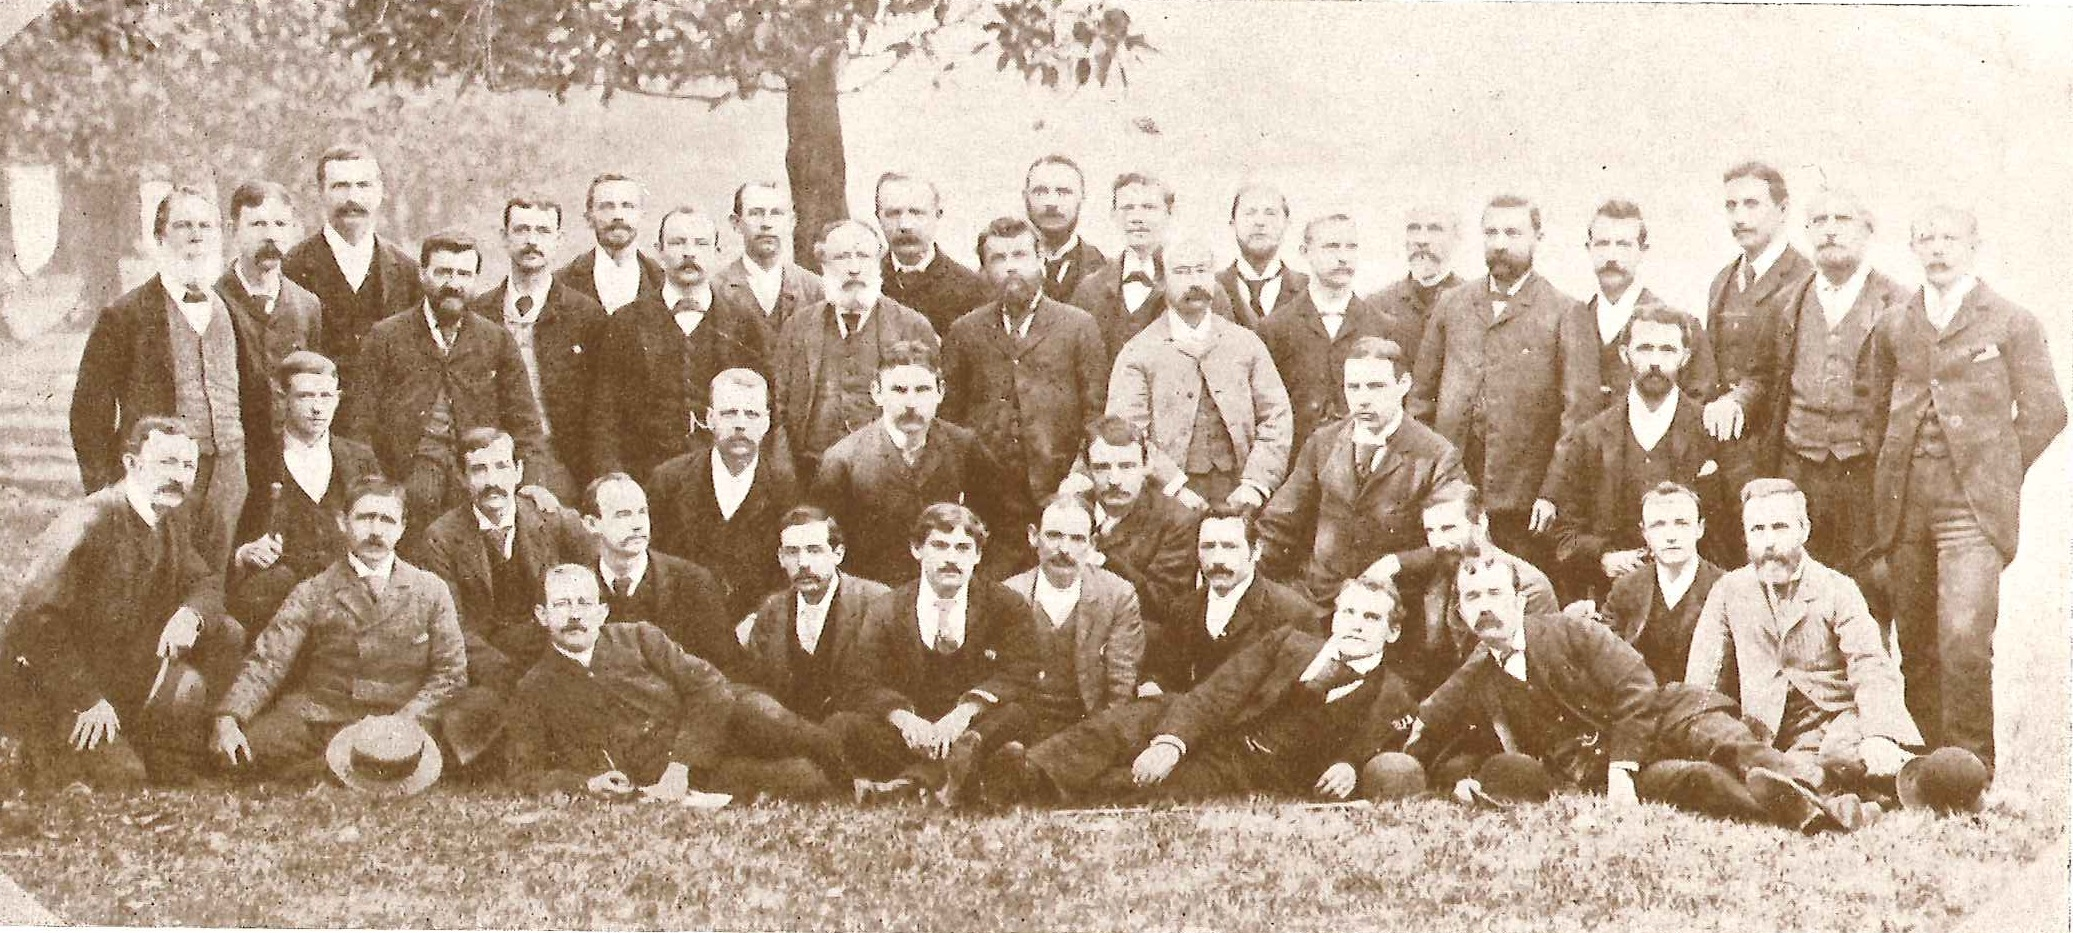 Staff of the Echo Companionship circa. 1890